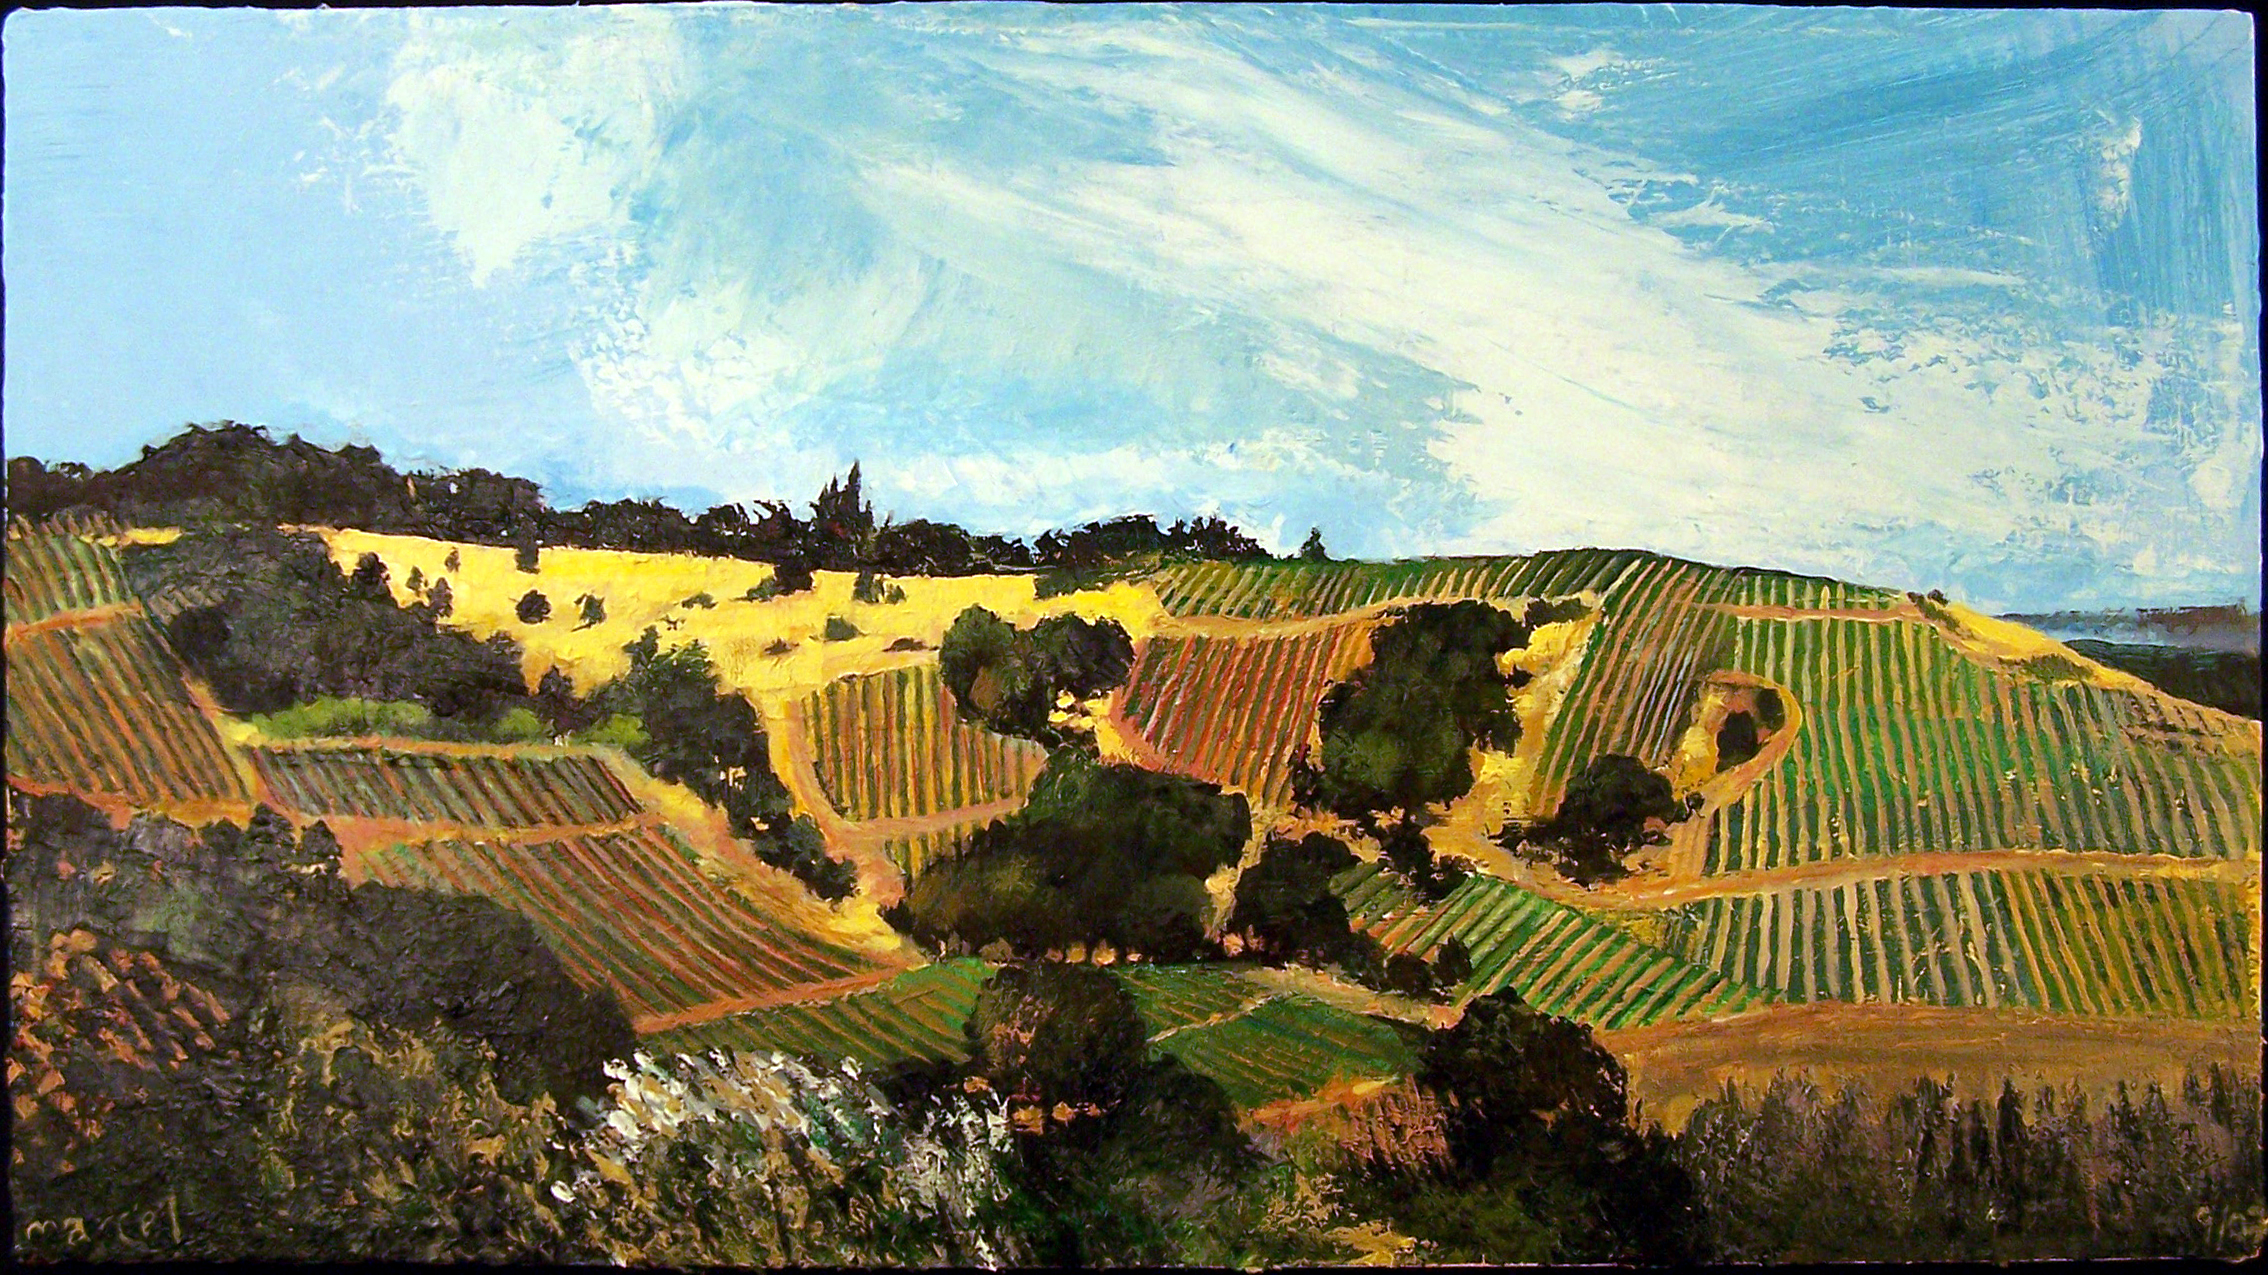 NMarcel-2007-acrylic on canvas-view from erratic rock.jpg